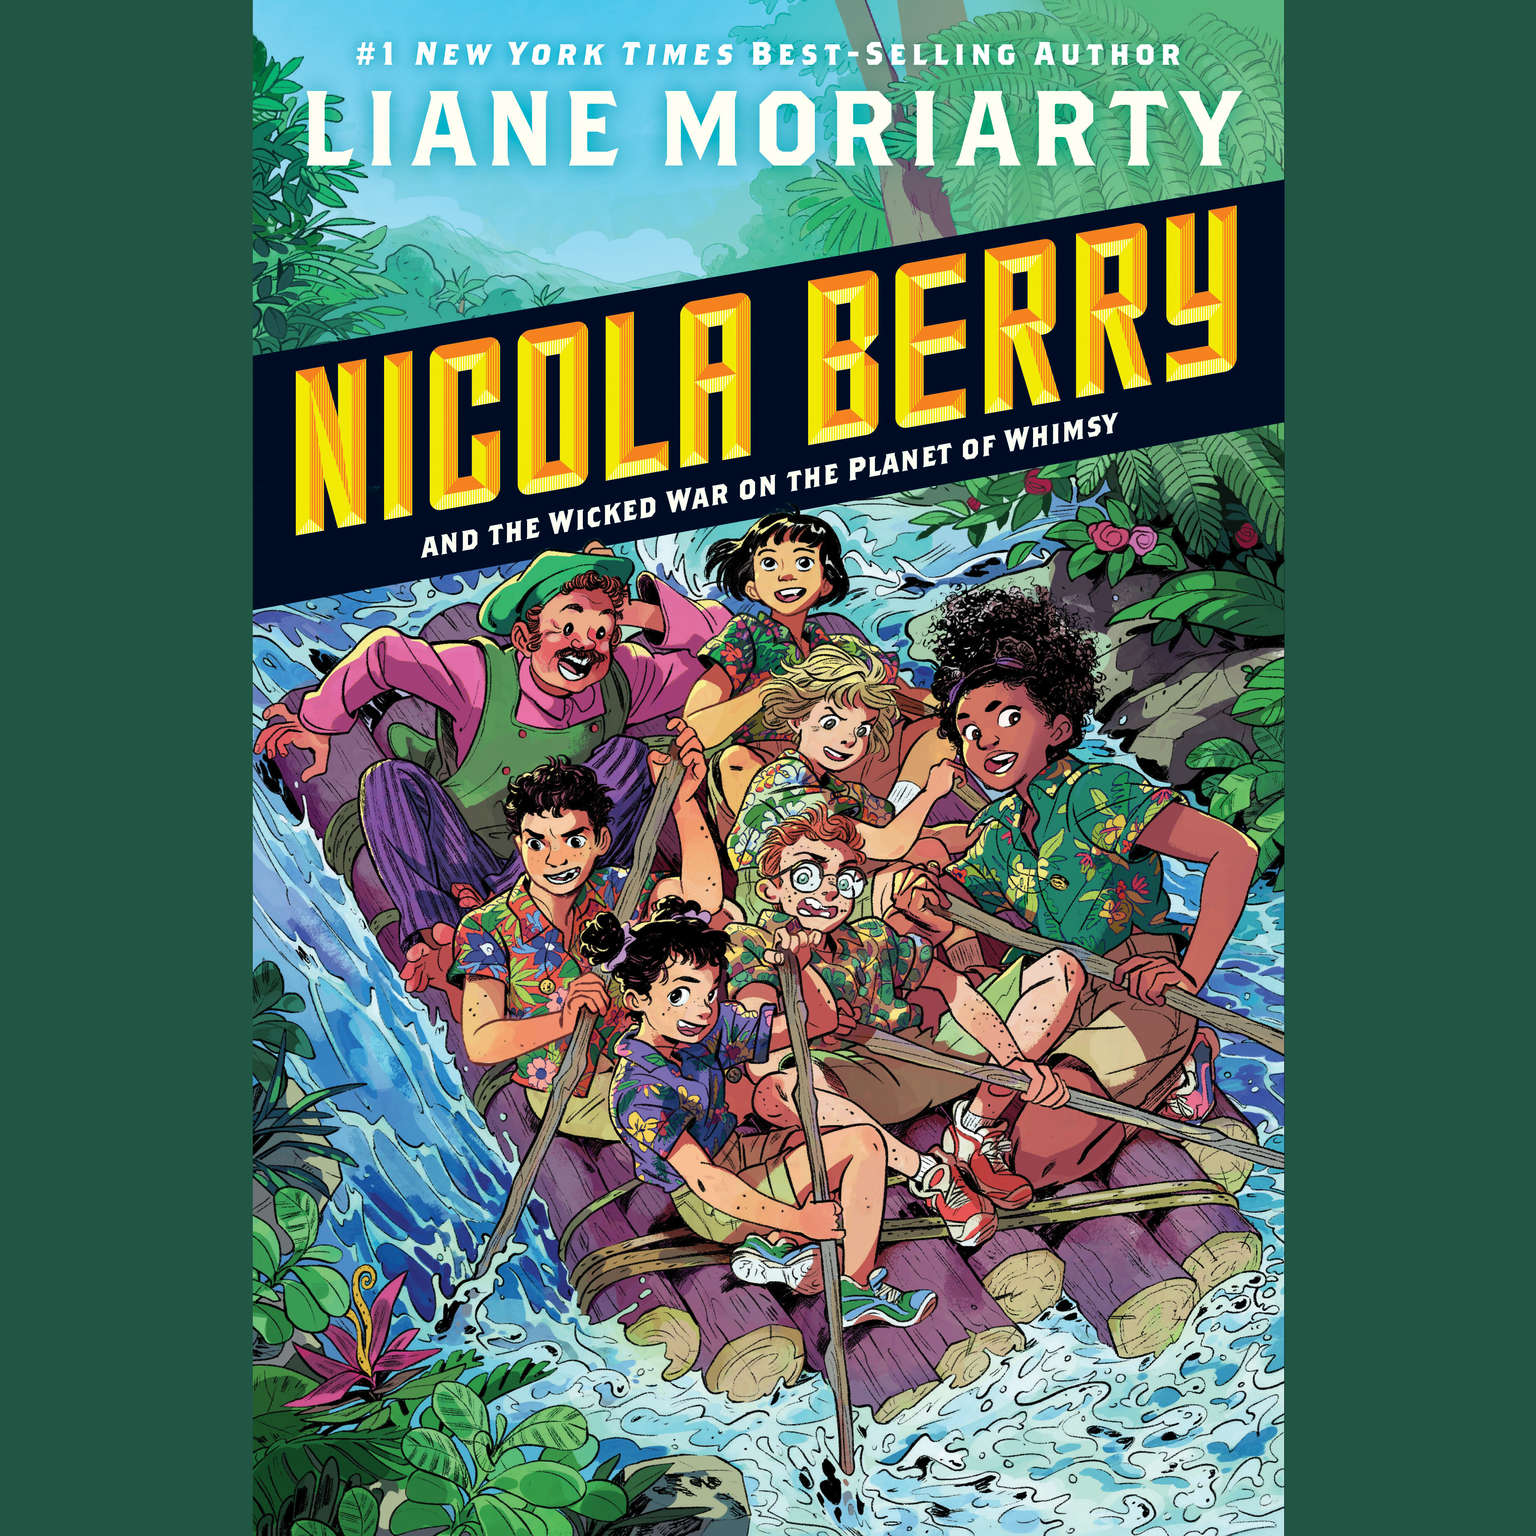 Nicola Berry and the Wicked War on the Planet of Whimsy #3 Audiobook, by Liane Moriarty